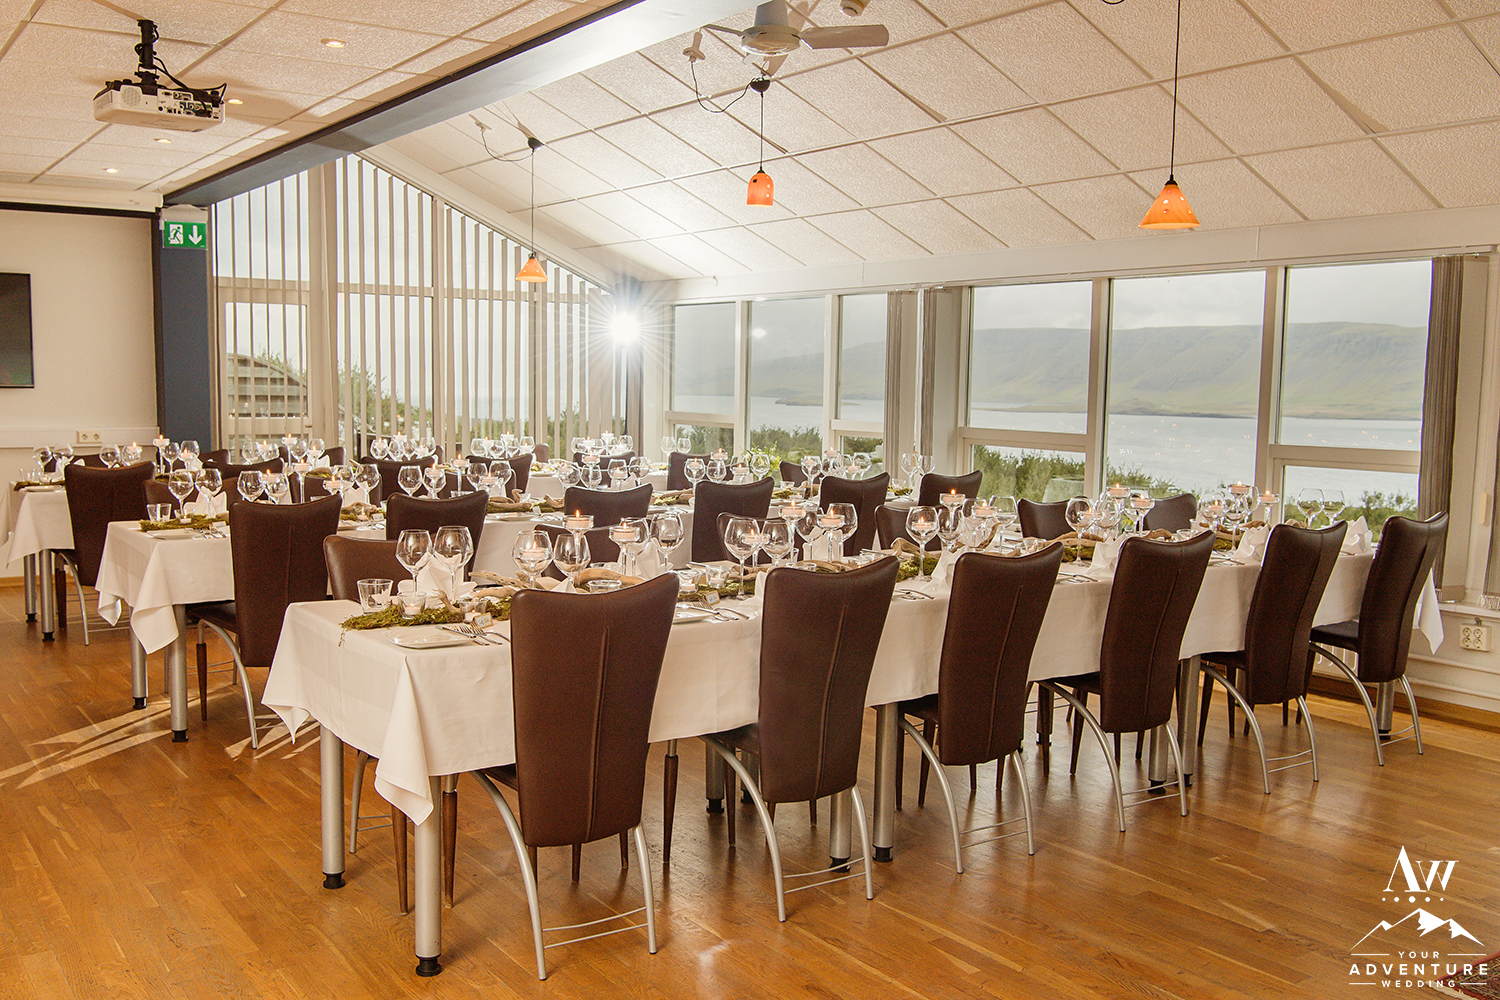 iceland-wedding-reception-at-hotel-glymur-your-adventure-wedding